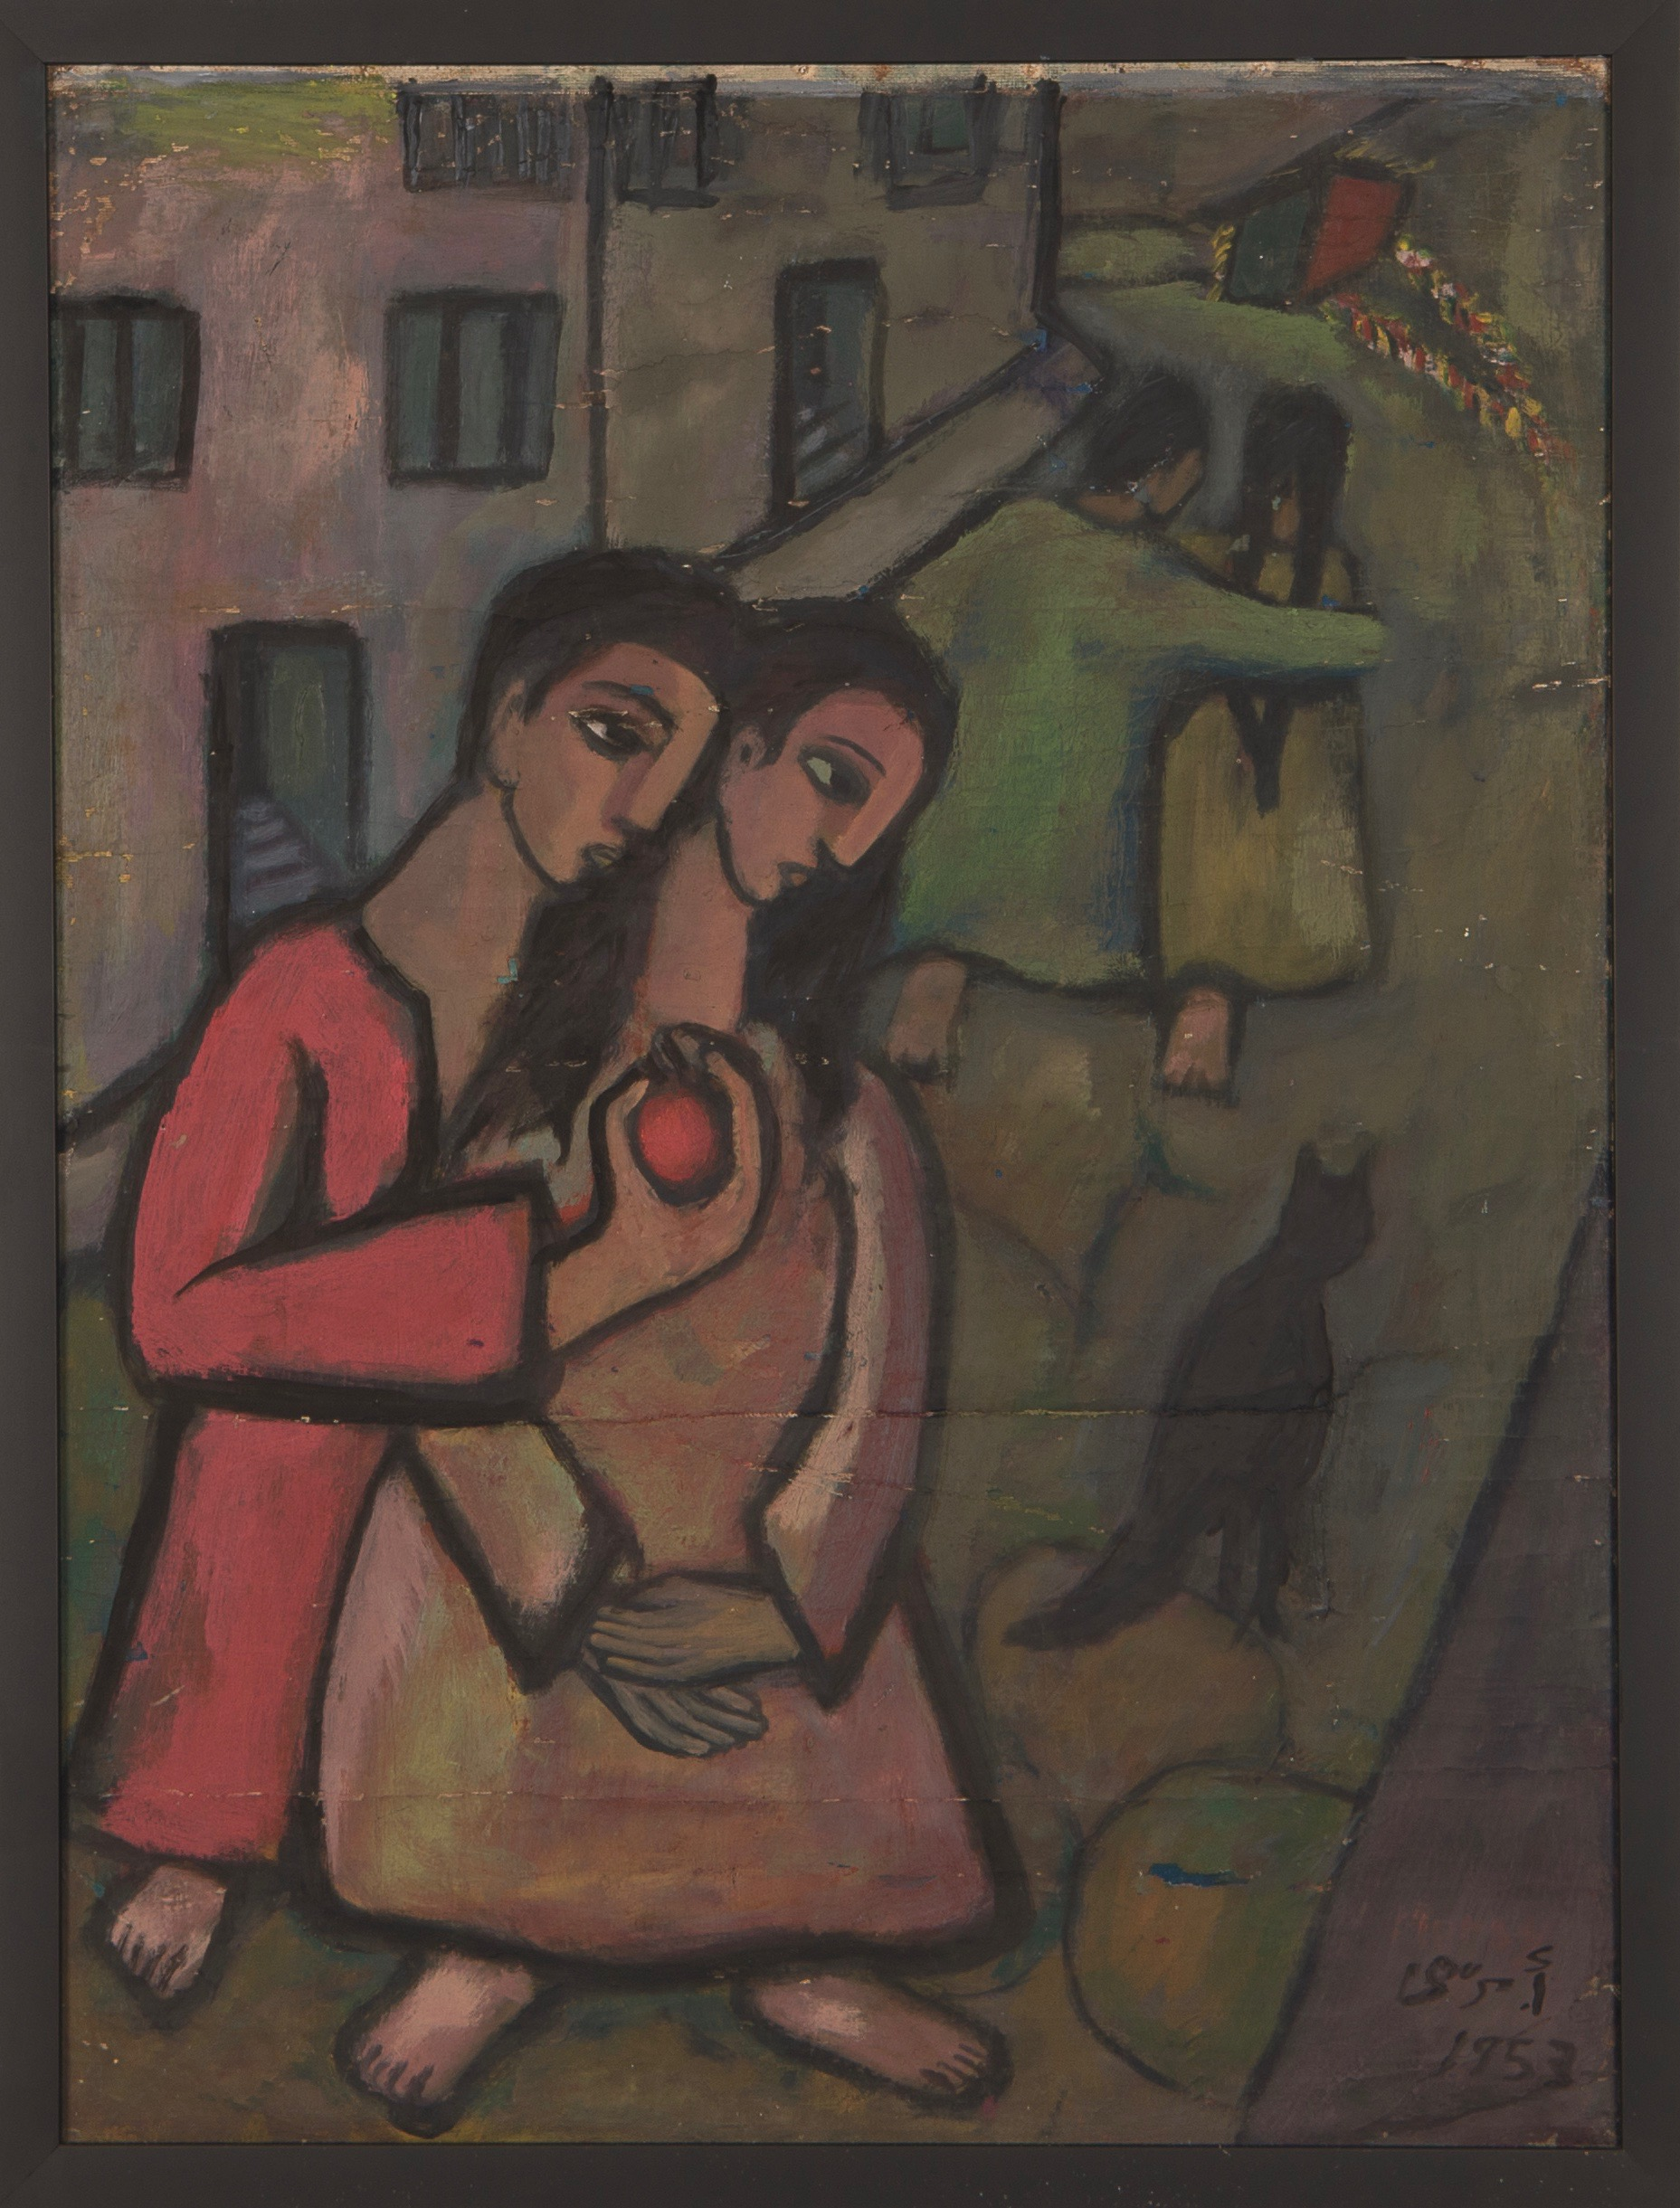 Ahmed-Morsi-Untitled-(Red-Apple)-1953.jpg